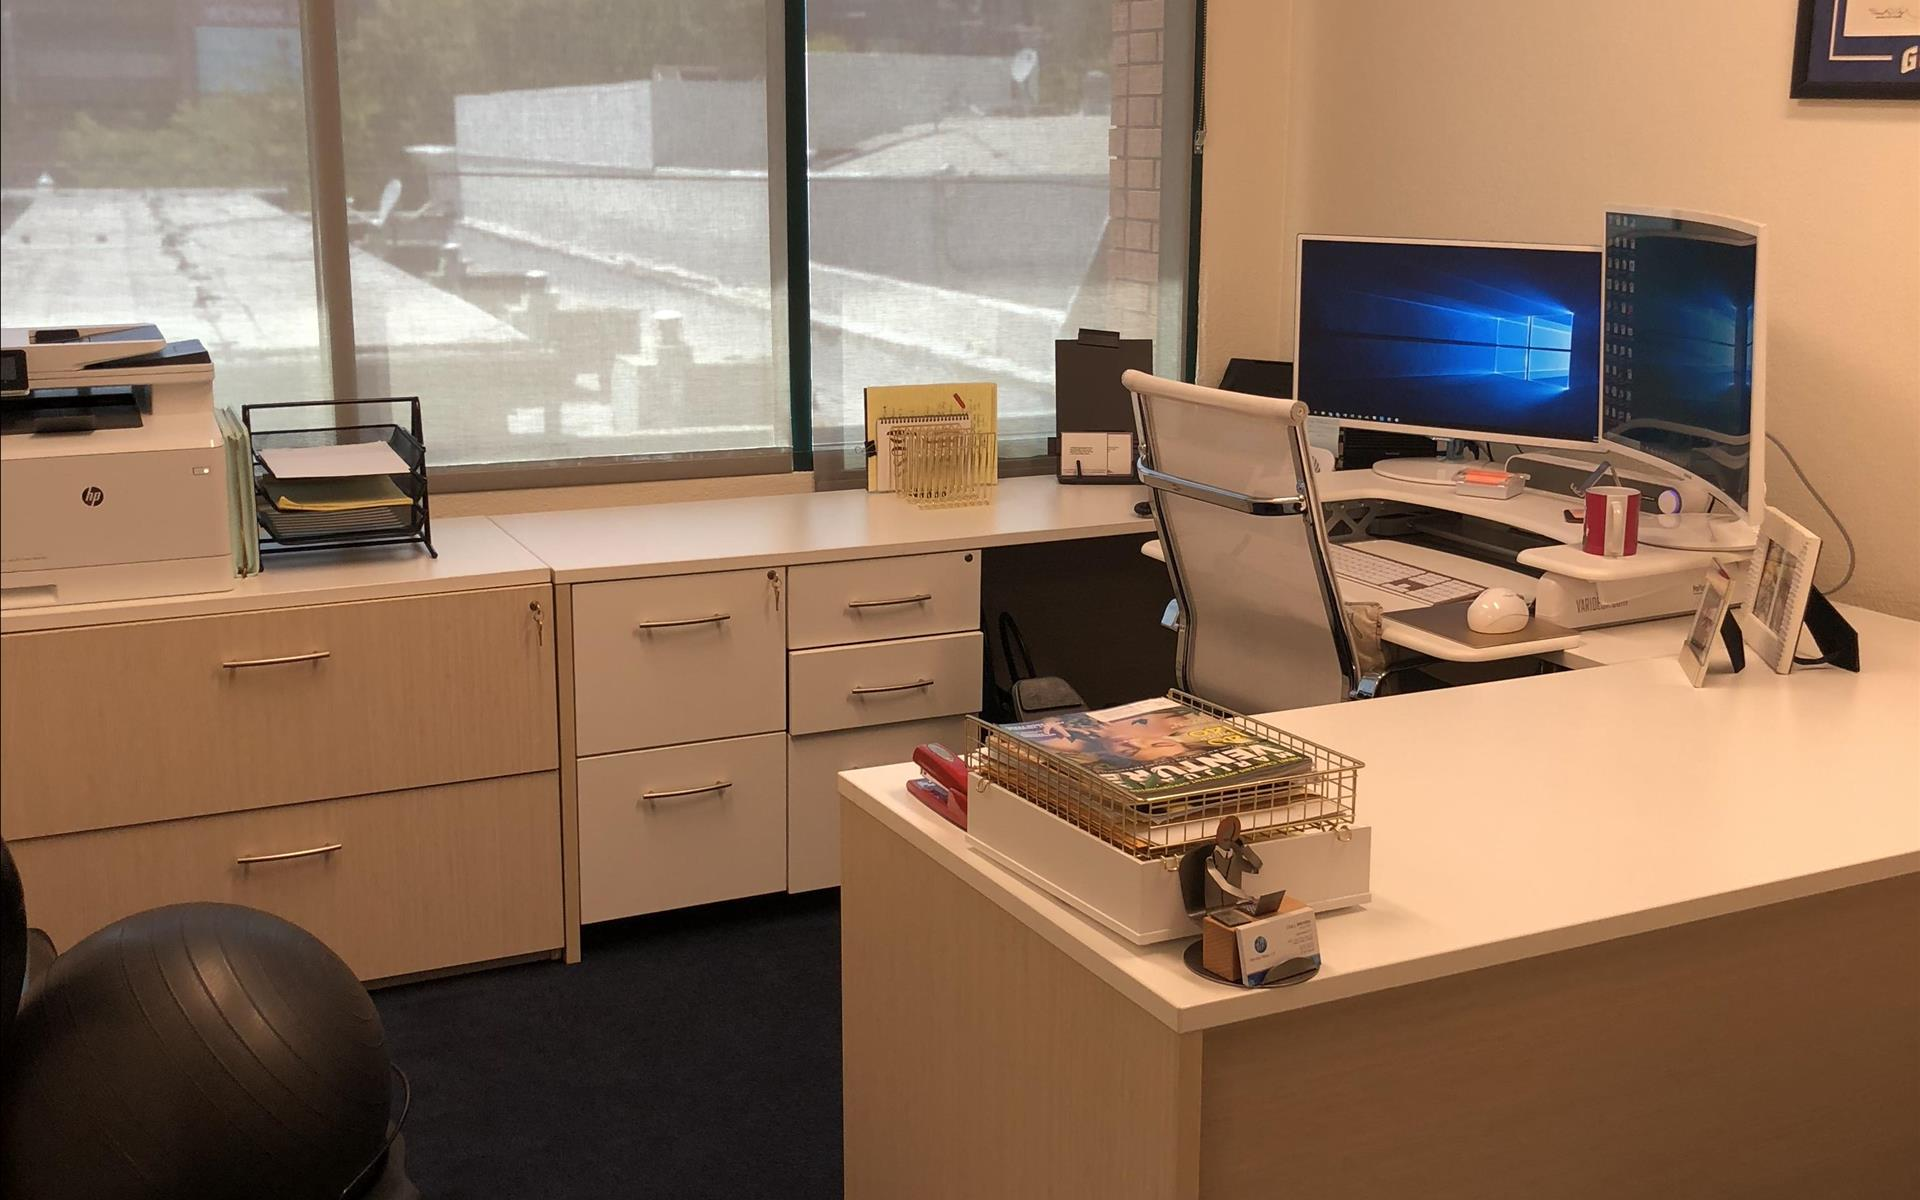 Downtown Walnut Creek offices-superb location & price!! - Downtown Walnut Creek Office for 1